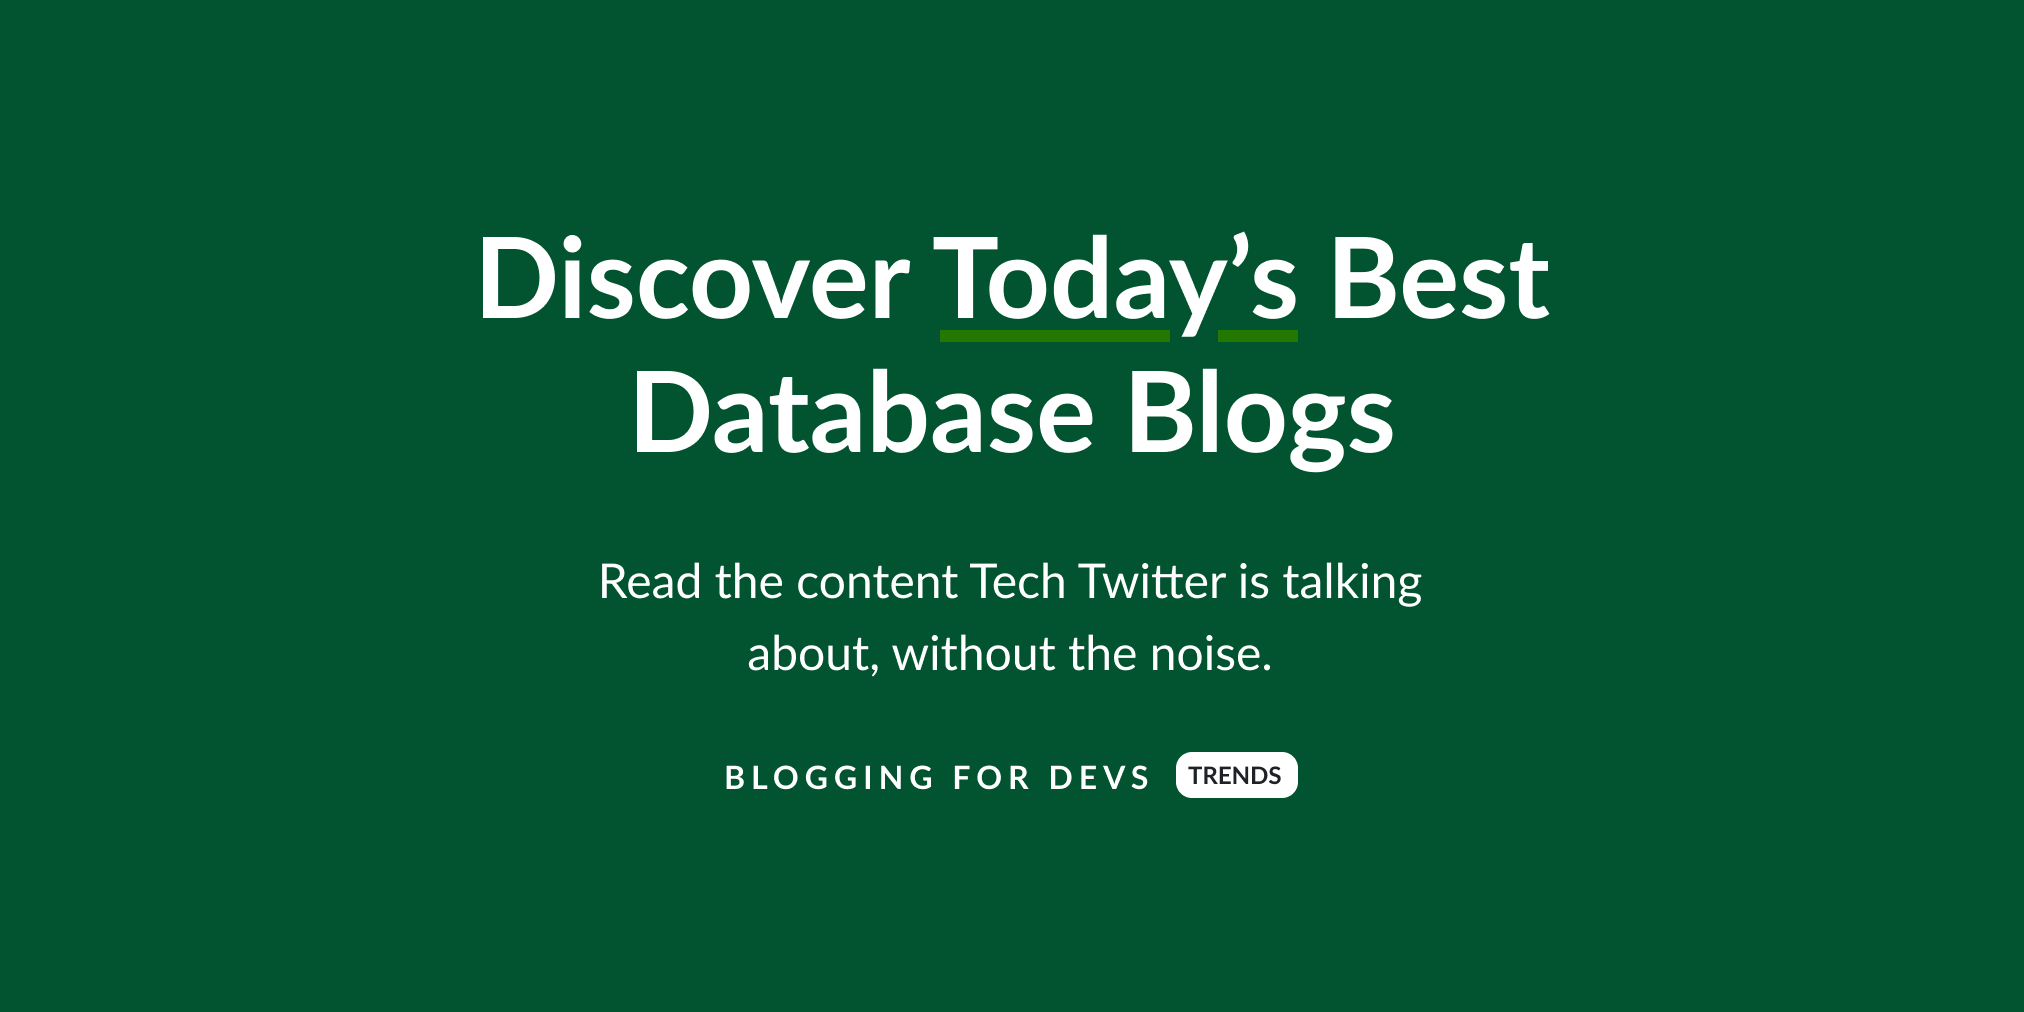 Best Database blogs